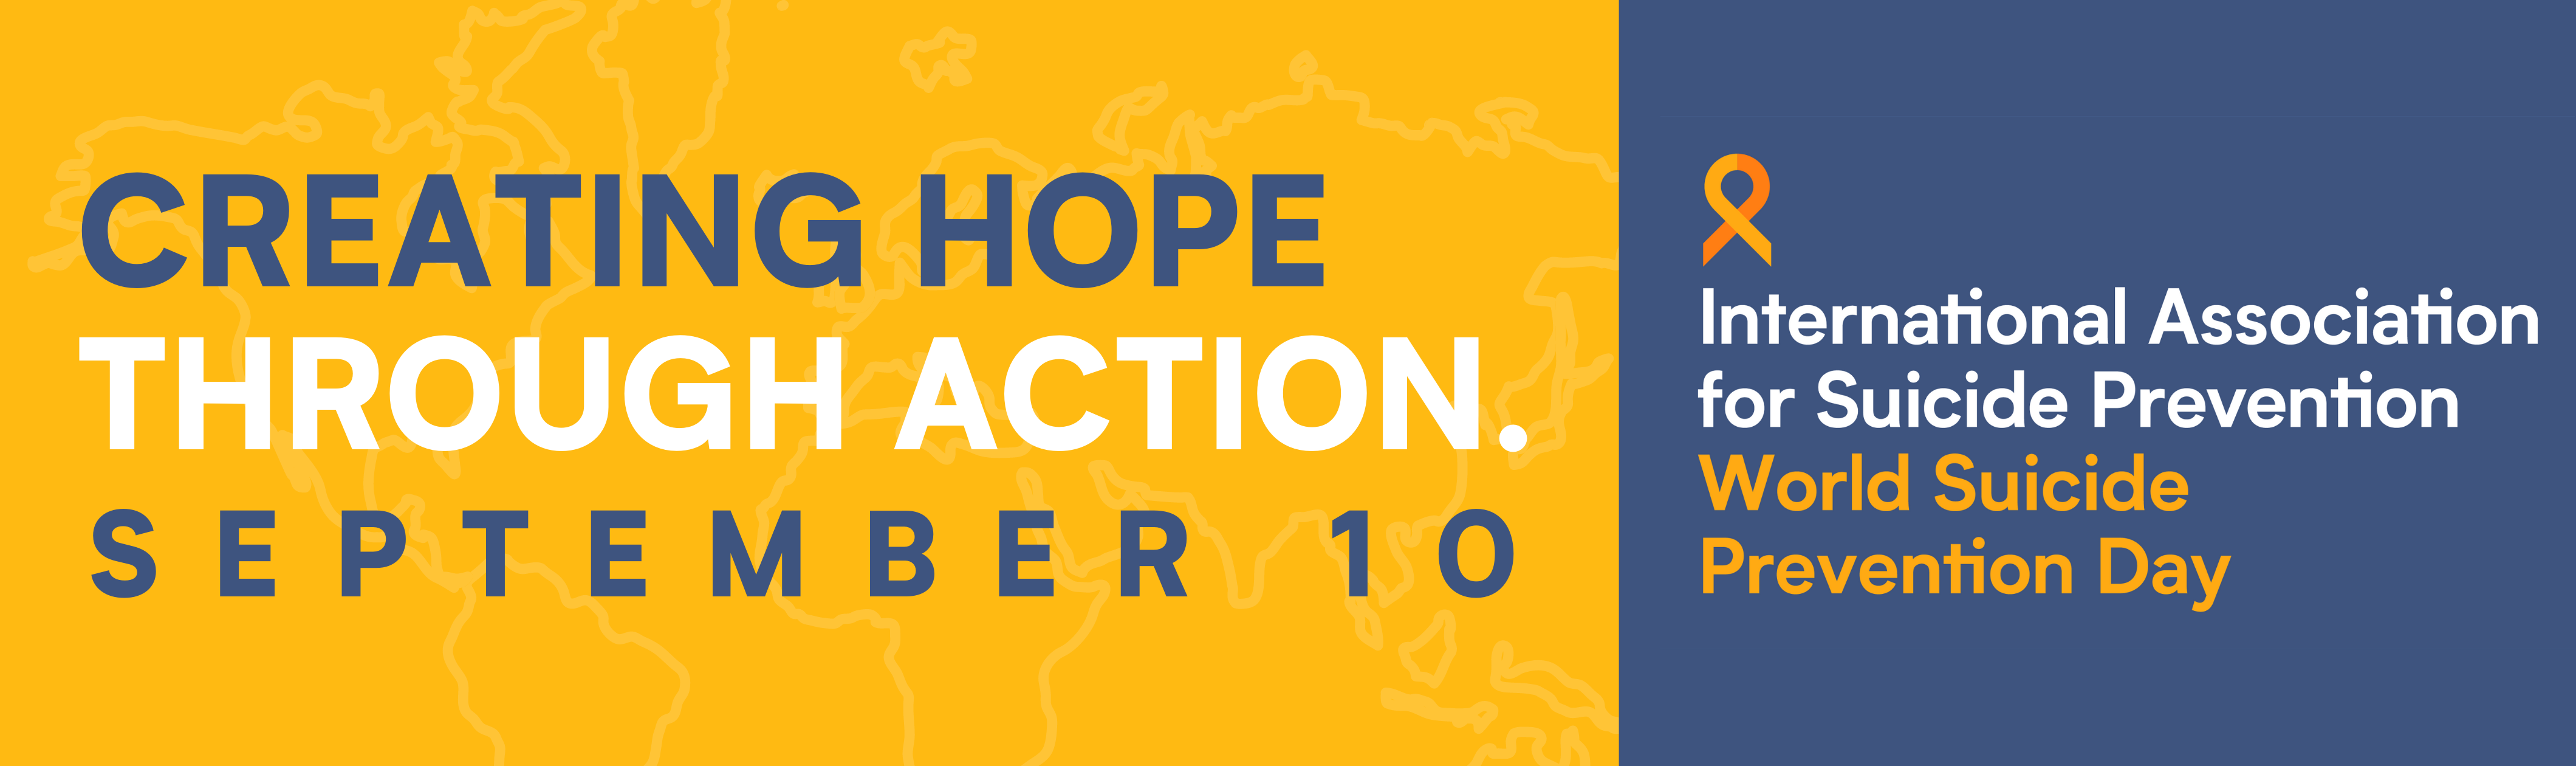 WSPD - Creating Hope Through Action